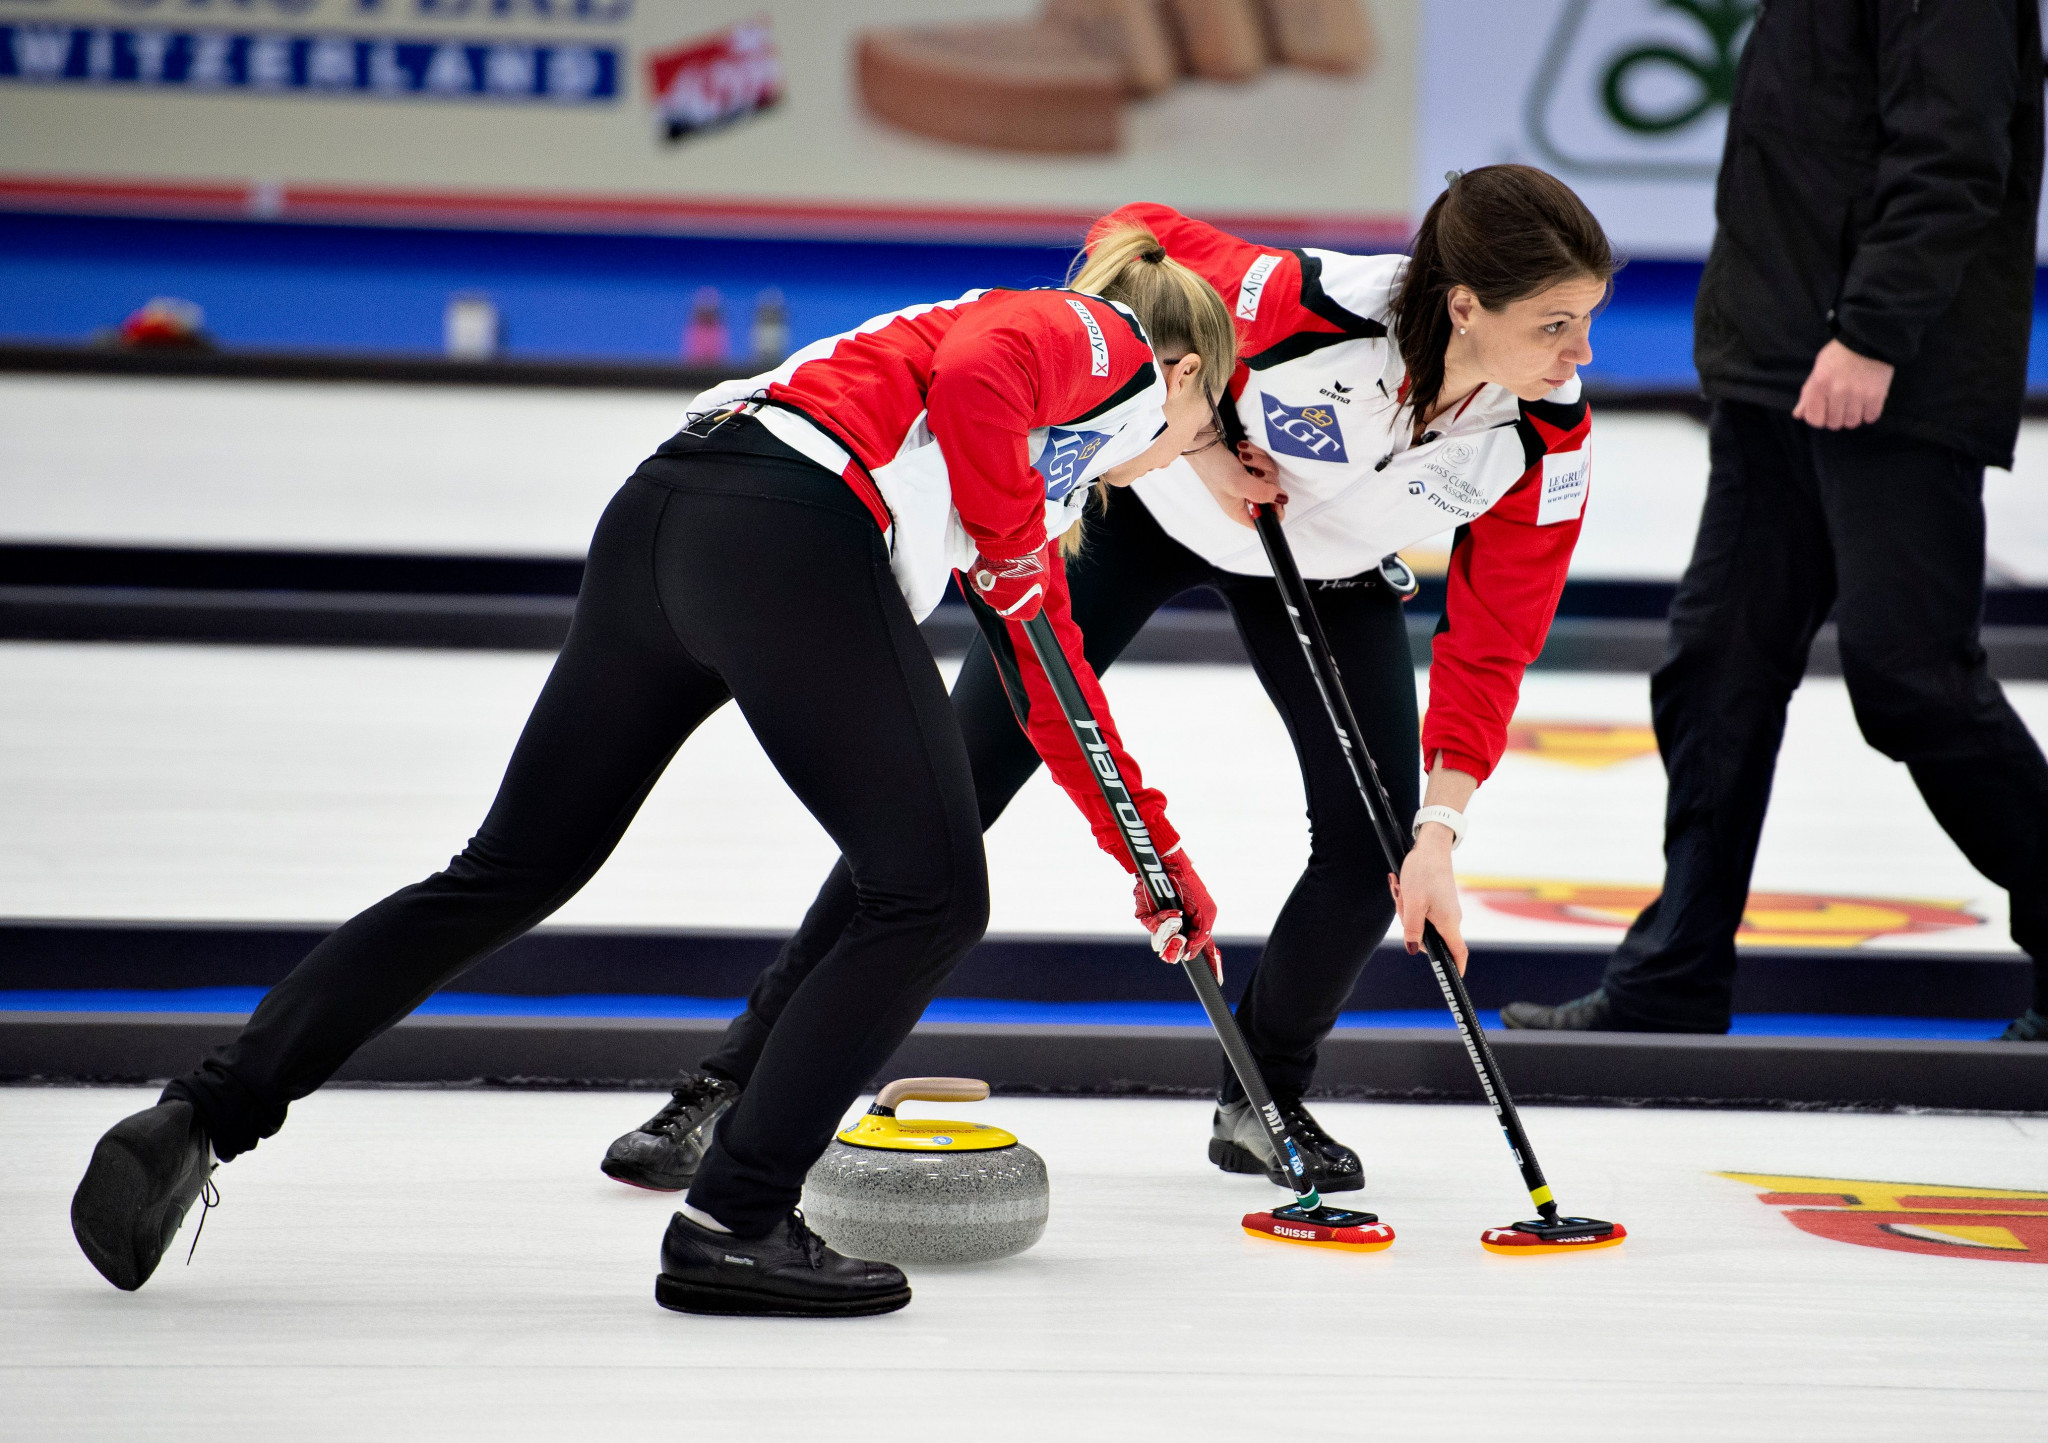 Switzerland are the reigning women's curling world champions ©Getty Images